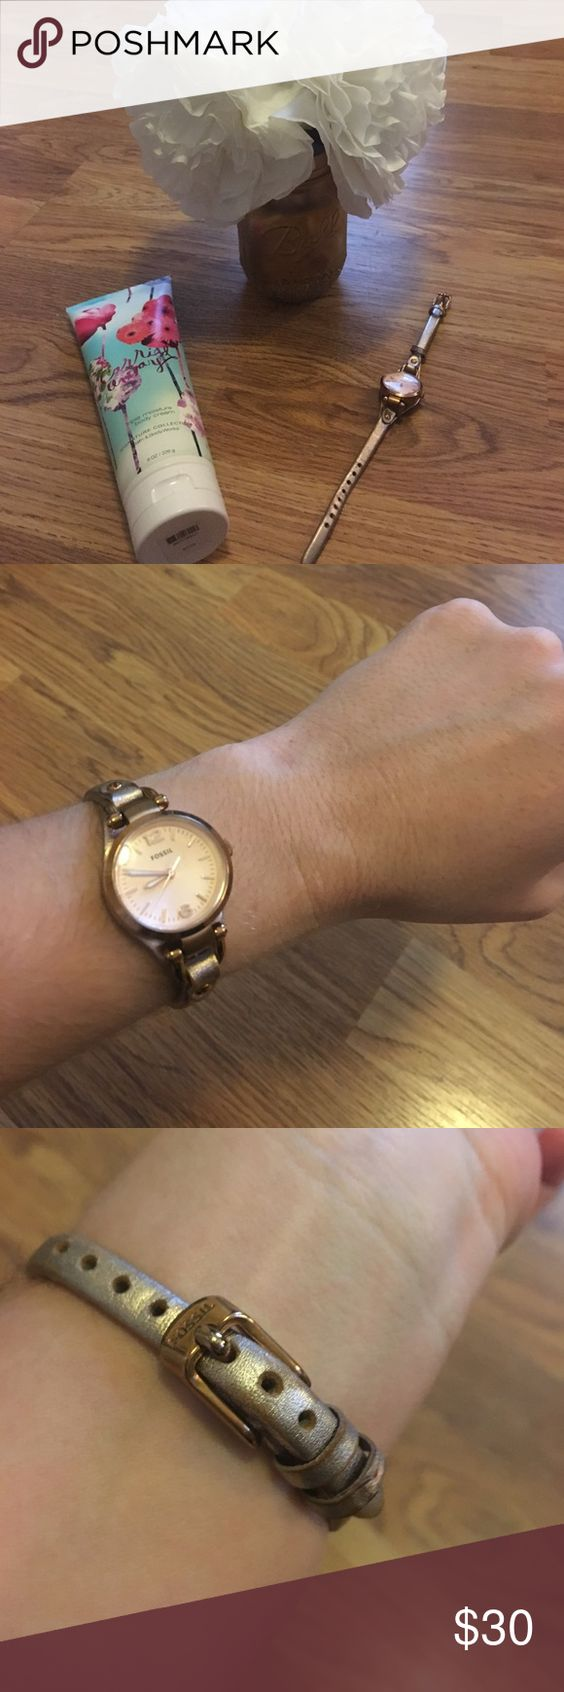 Fossil Genuine Leather Watch Fossil Genuine Leather Watch. Great condition! Pet and smoke free home! Feel free to send offers! Fossil Accessories Watches